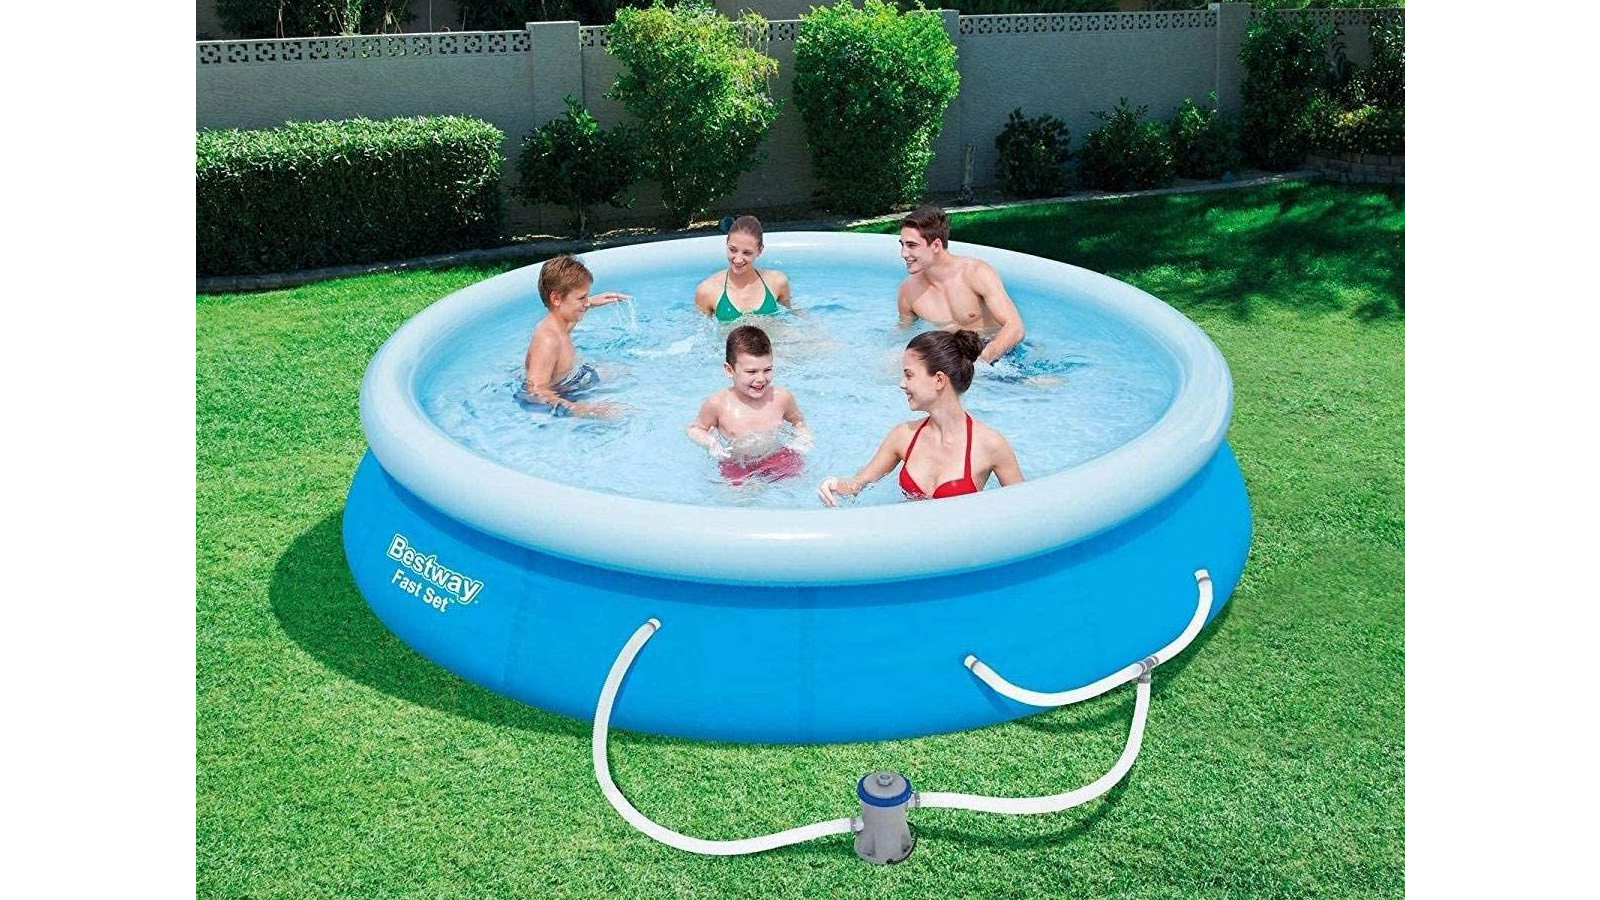 A family enjoying swimming in an above-ground pool in their backyard